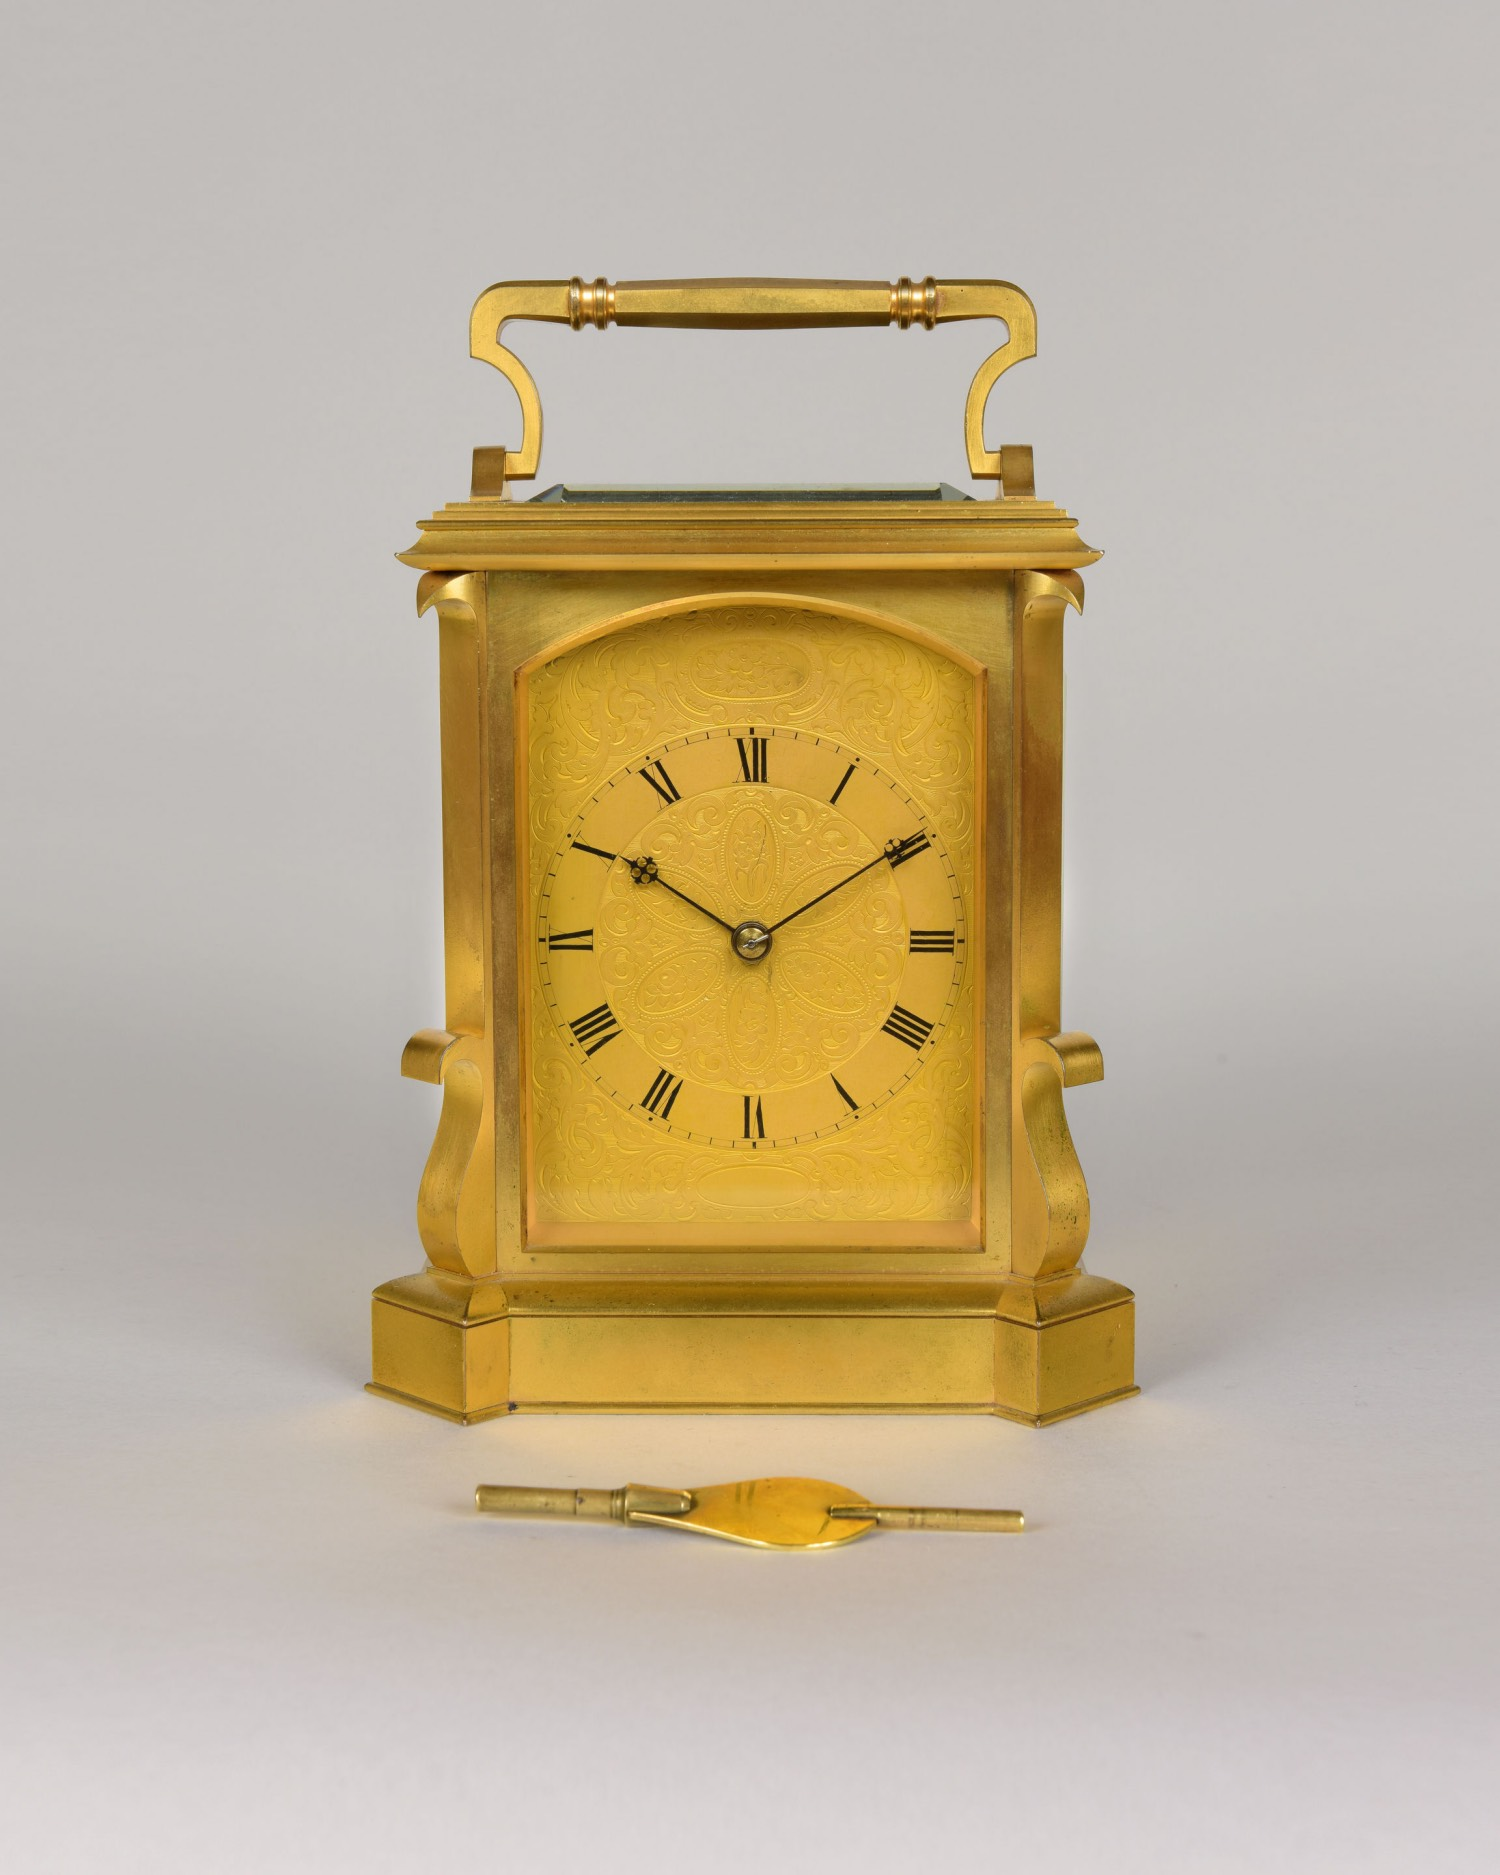 JOHN MOORE AND SONS, NUMBER 13480. AN EXCEPTIONAL GIANT GILT BRONZE CARRIAGE CLOCK